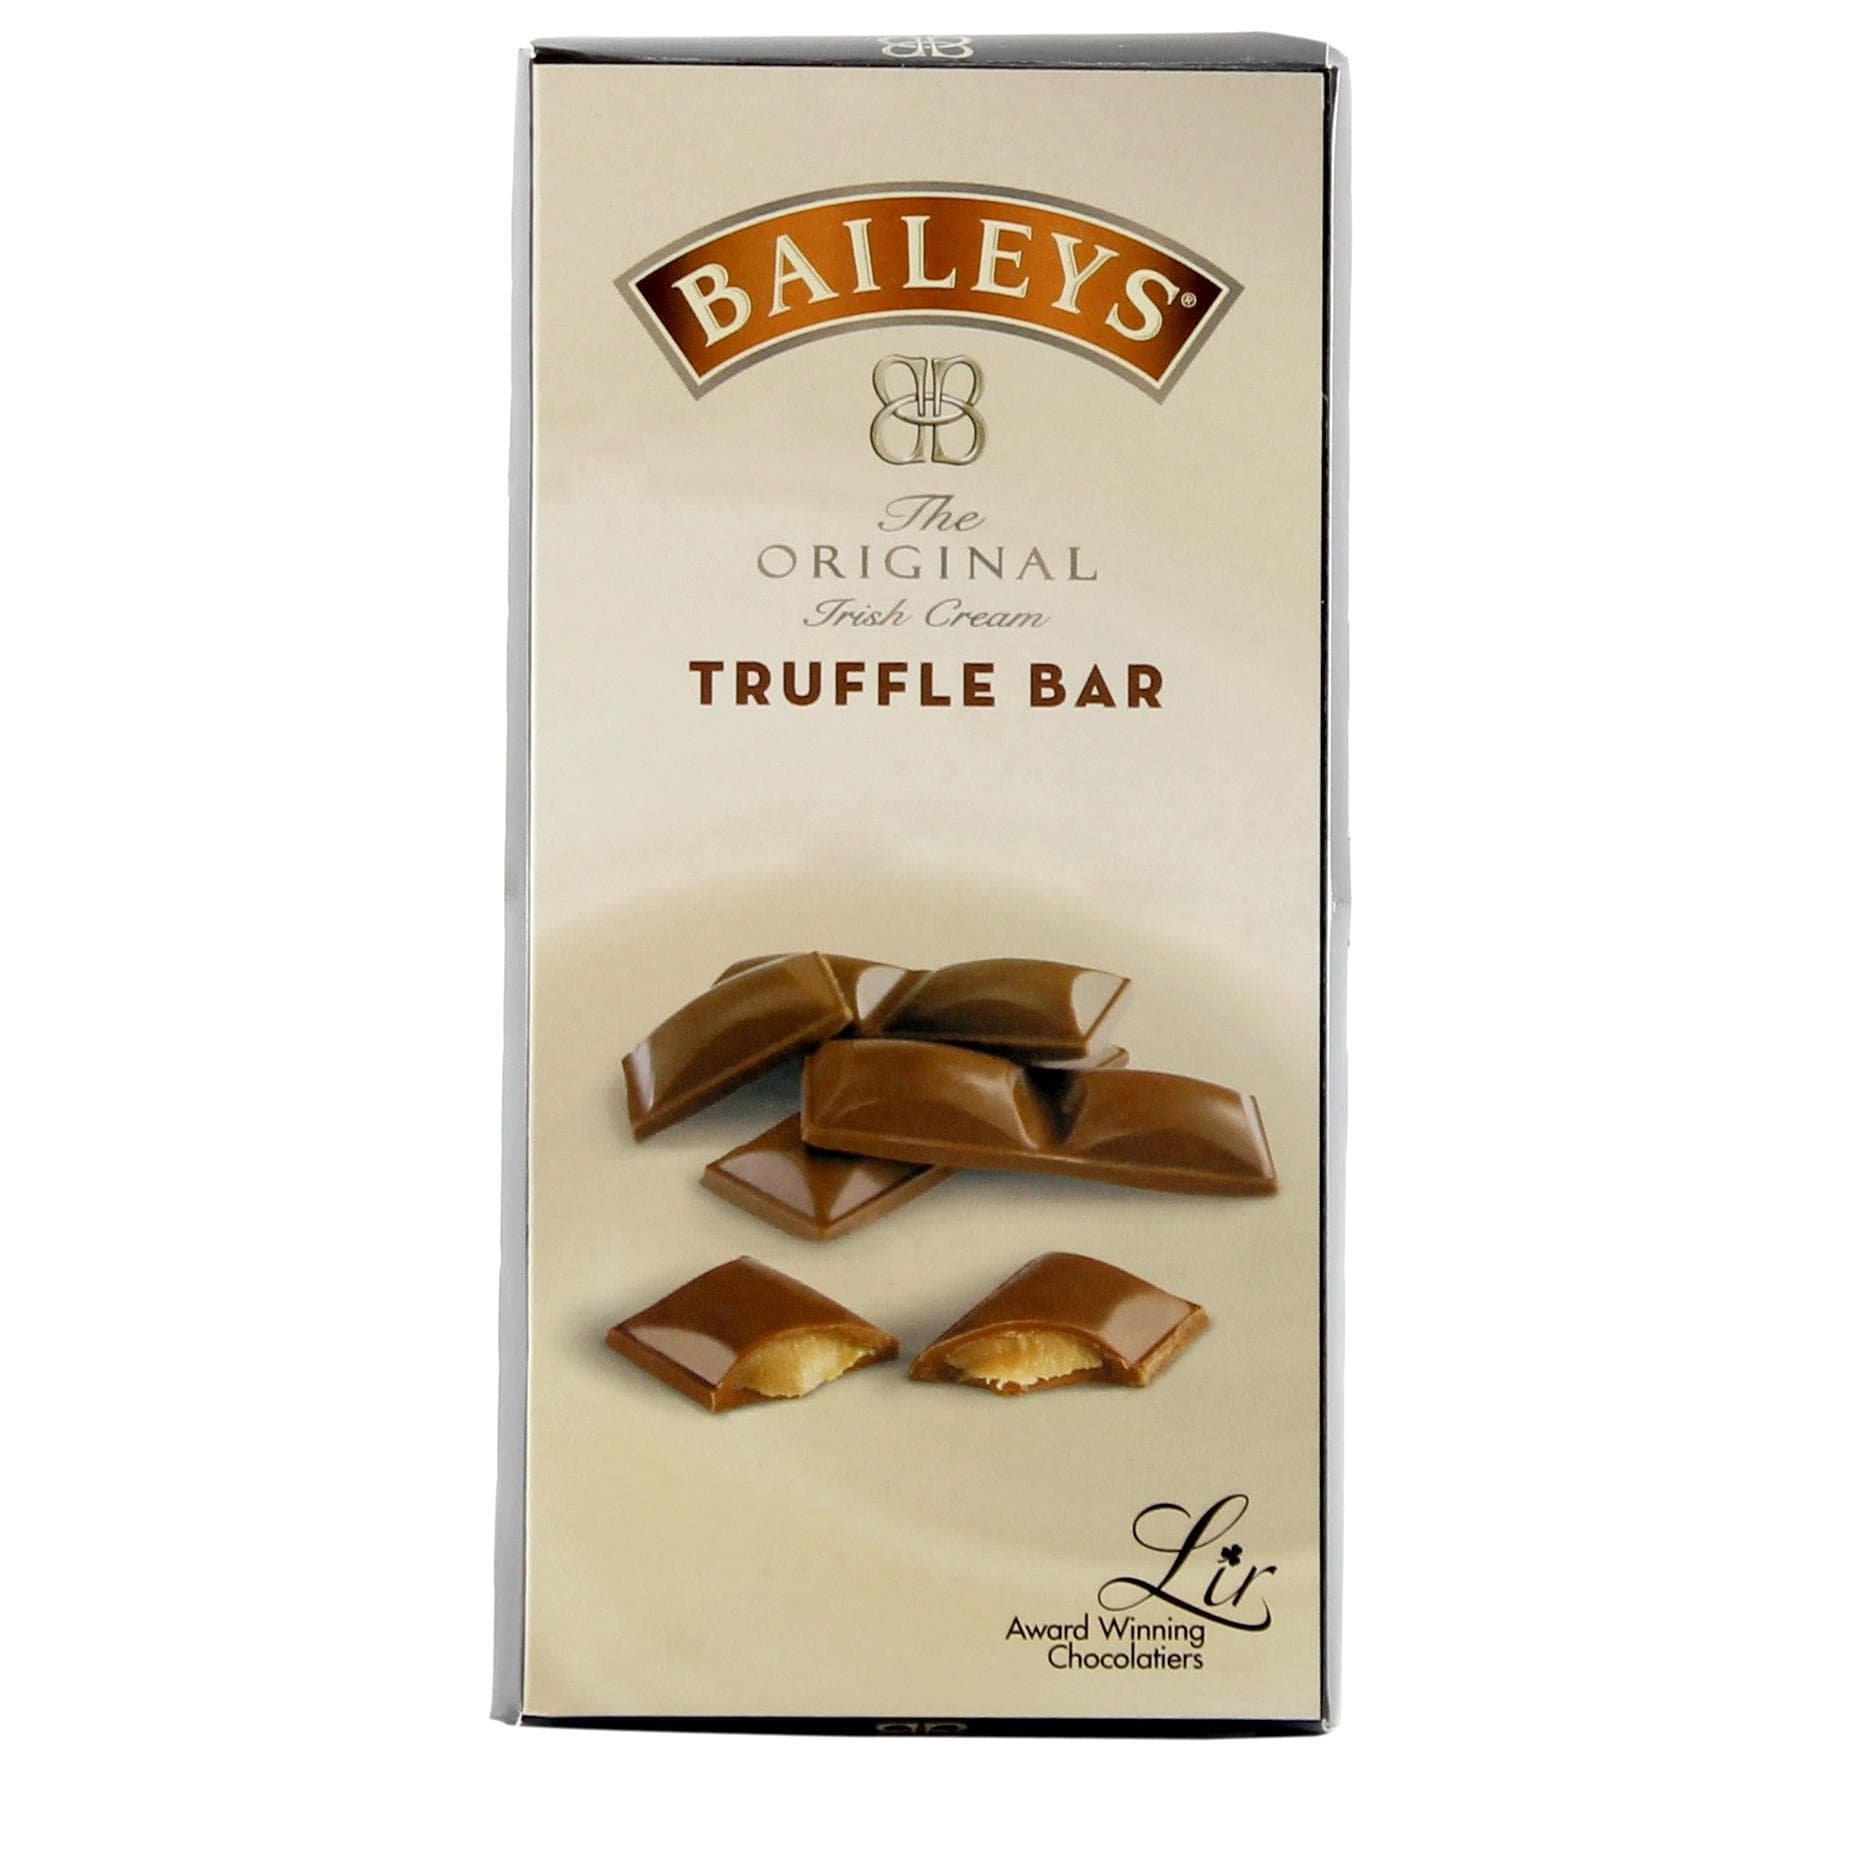 Baileys - The Original Irish Cream Truffle Bar - 90g